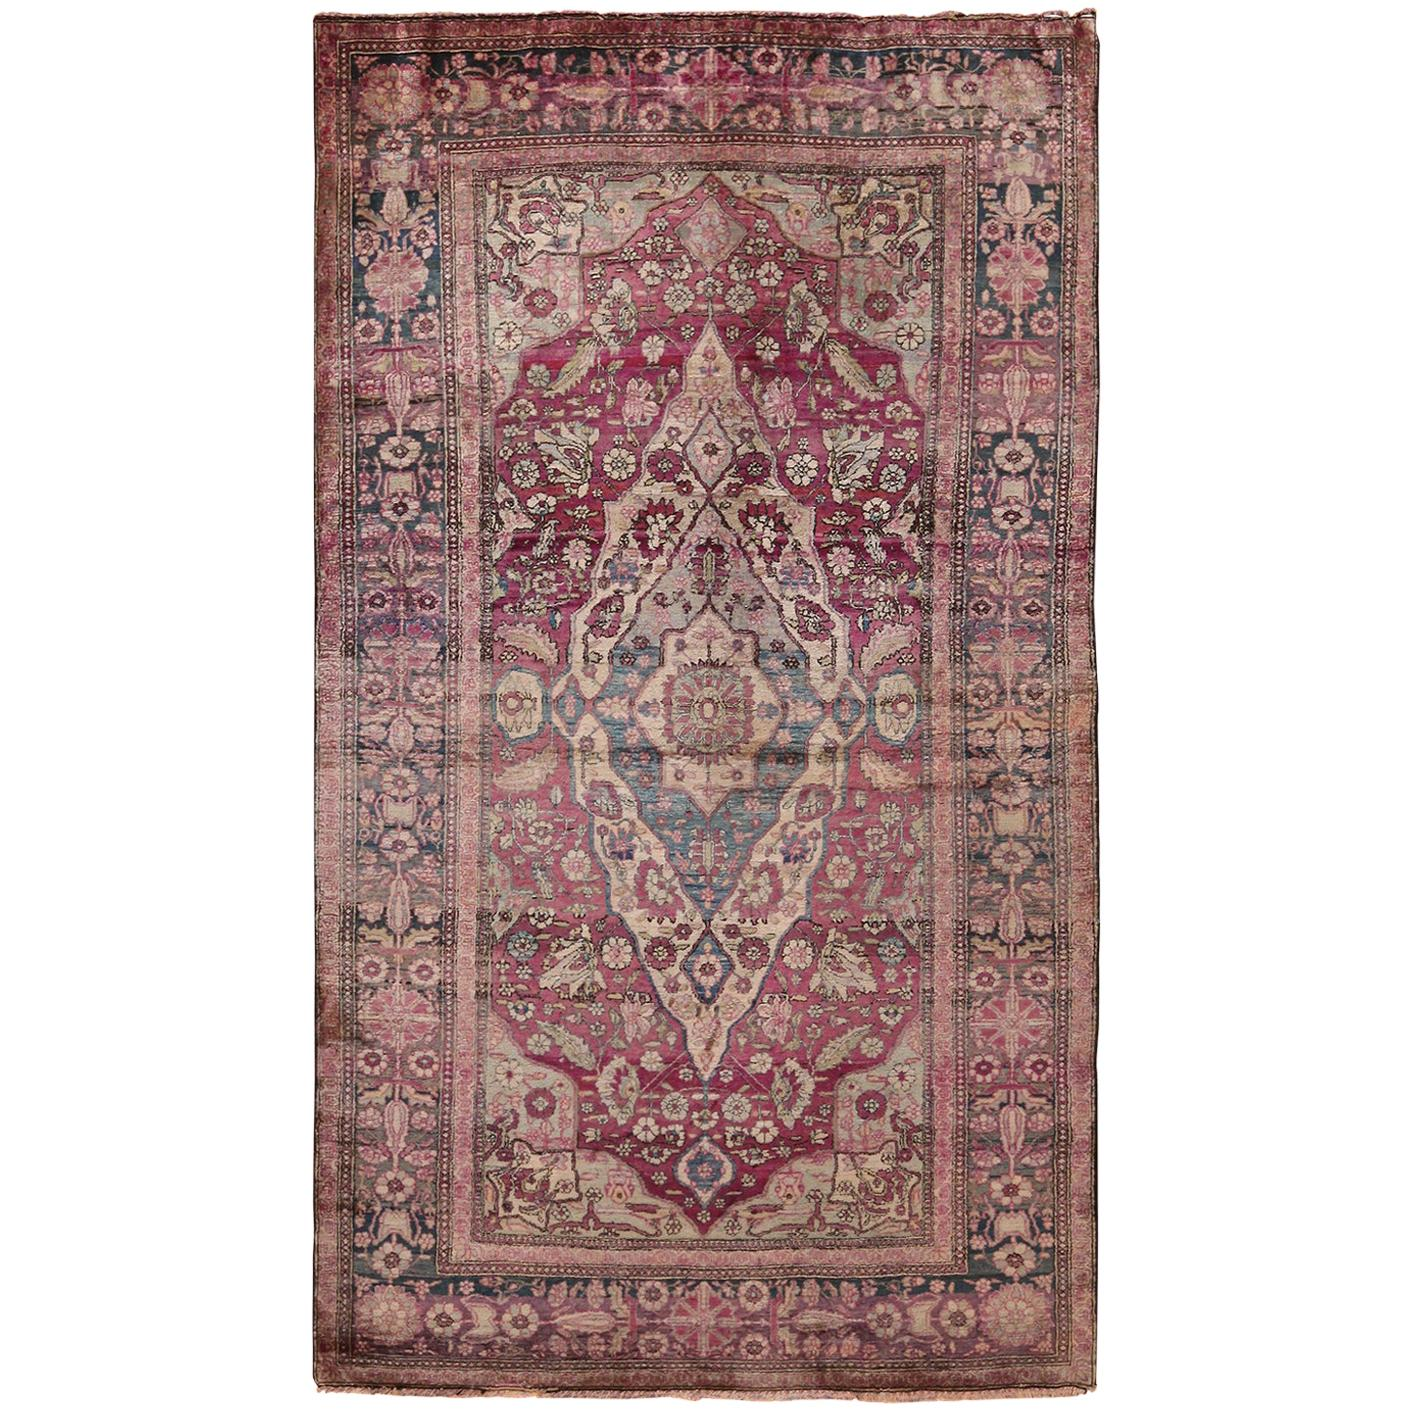 Silk Kashan Mohtashem Antique Persian Rug